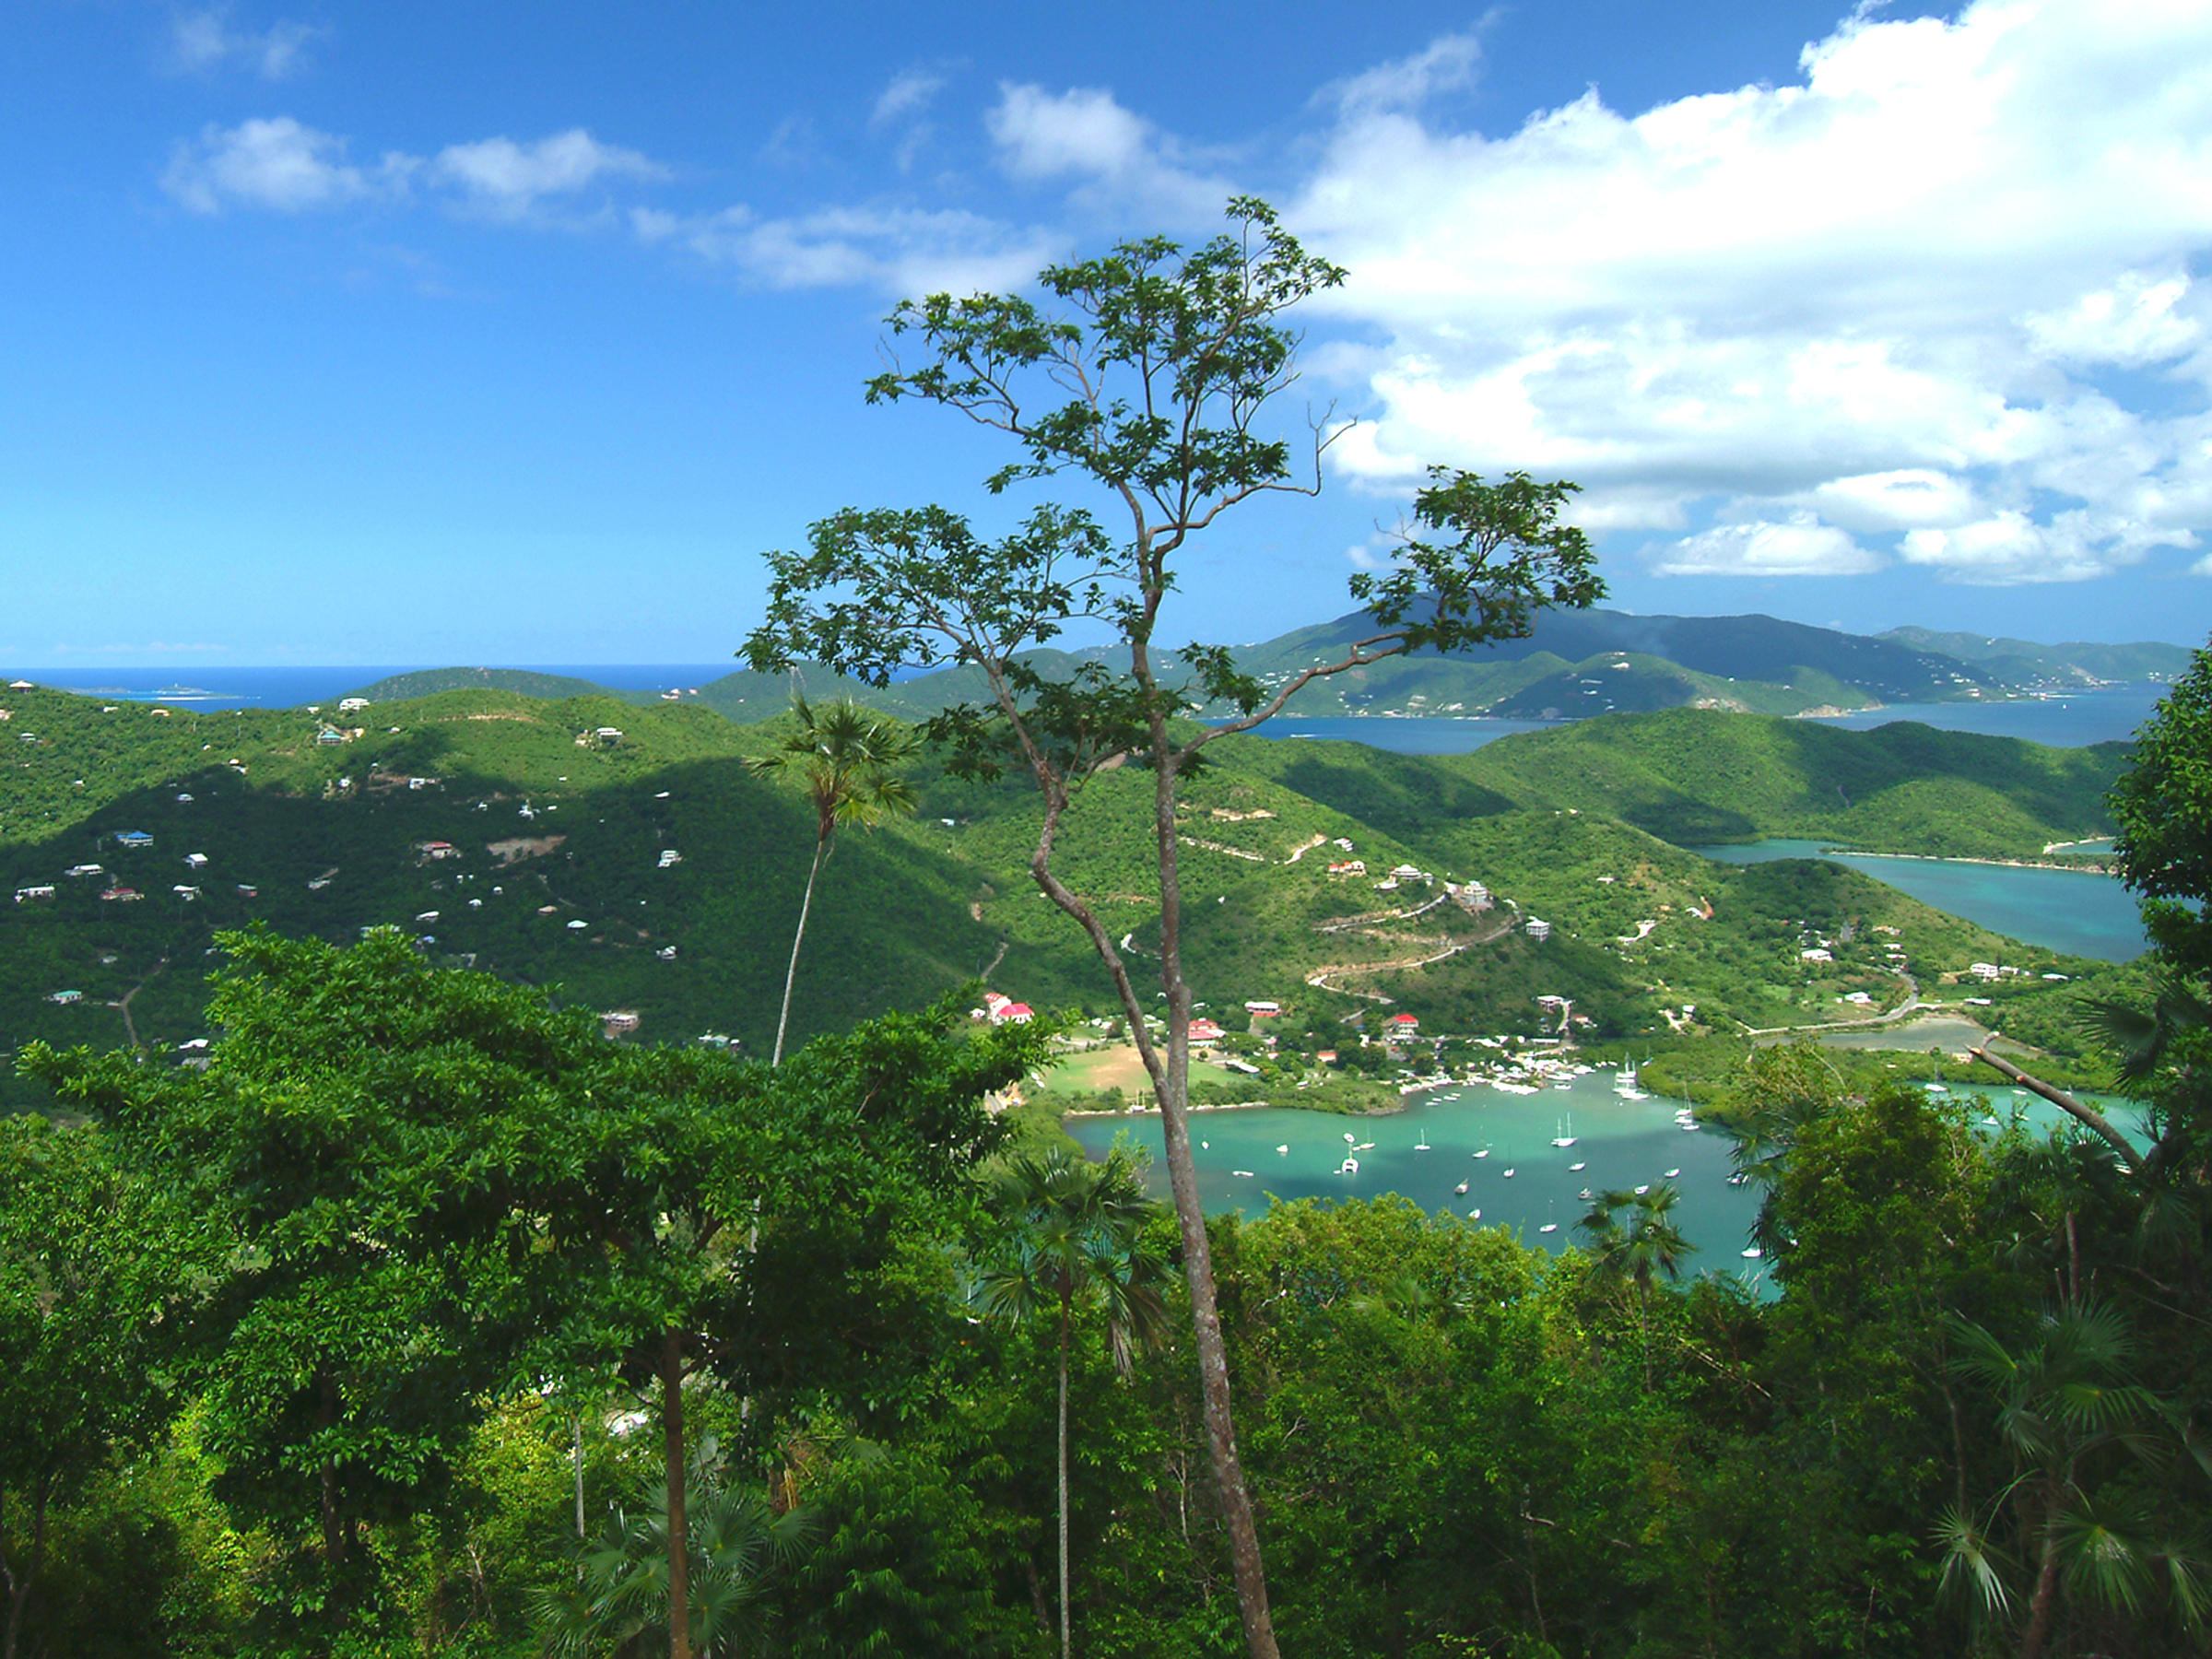 VIEW CORAL BAY TO TORTOLA